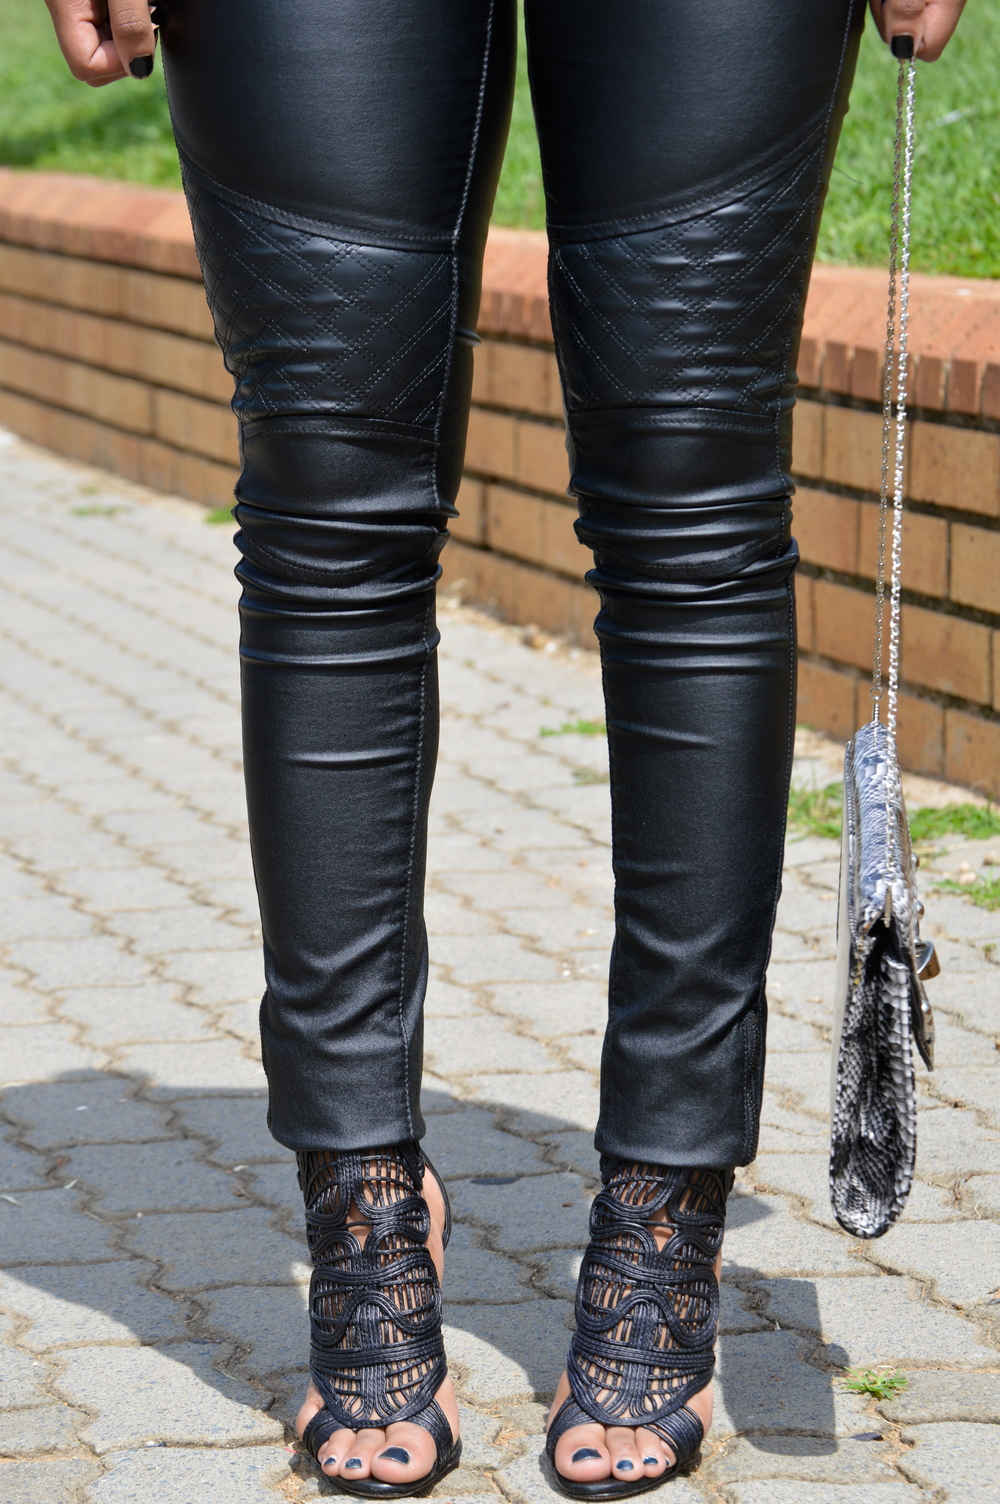 Kaylista_leather11